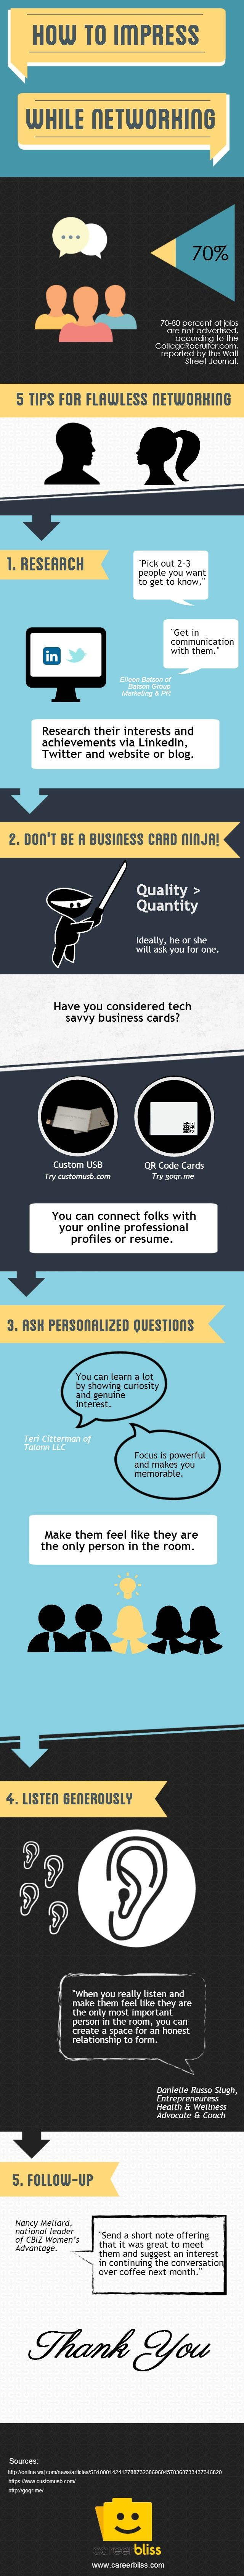 5 simple tips for flawless networking infographic the savvy intern by youtern